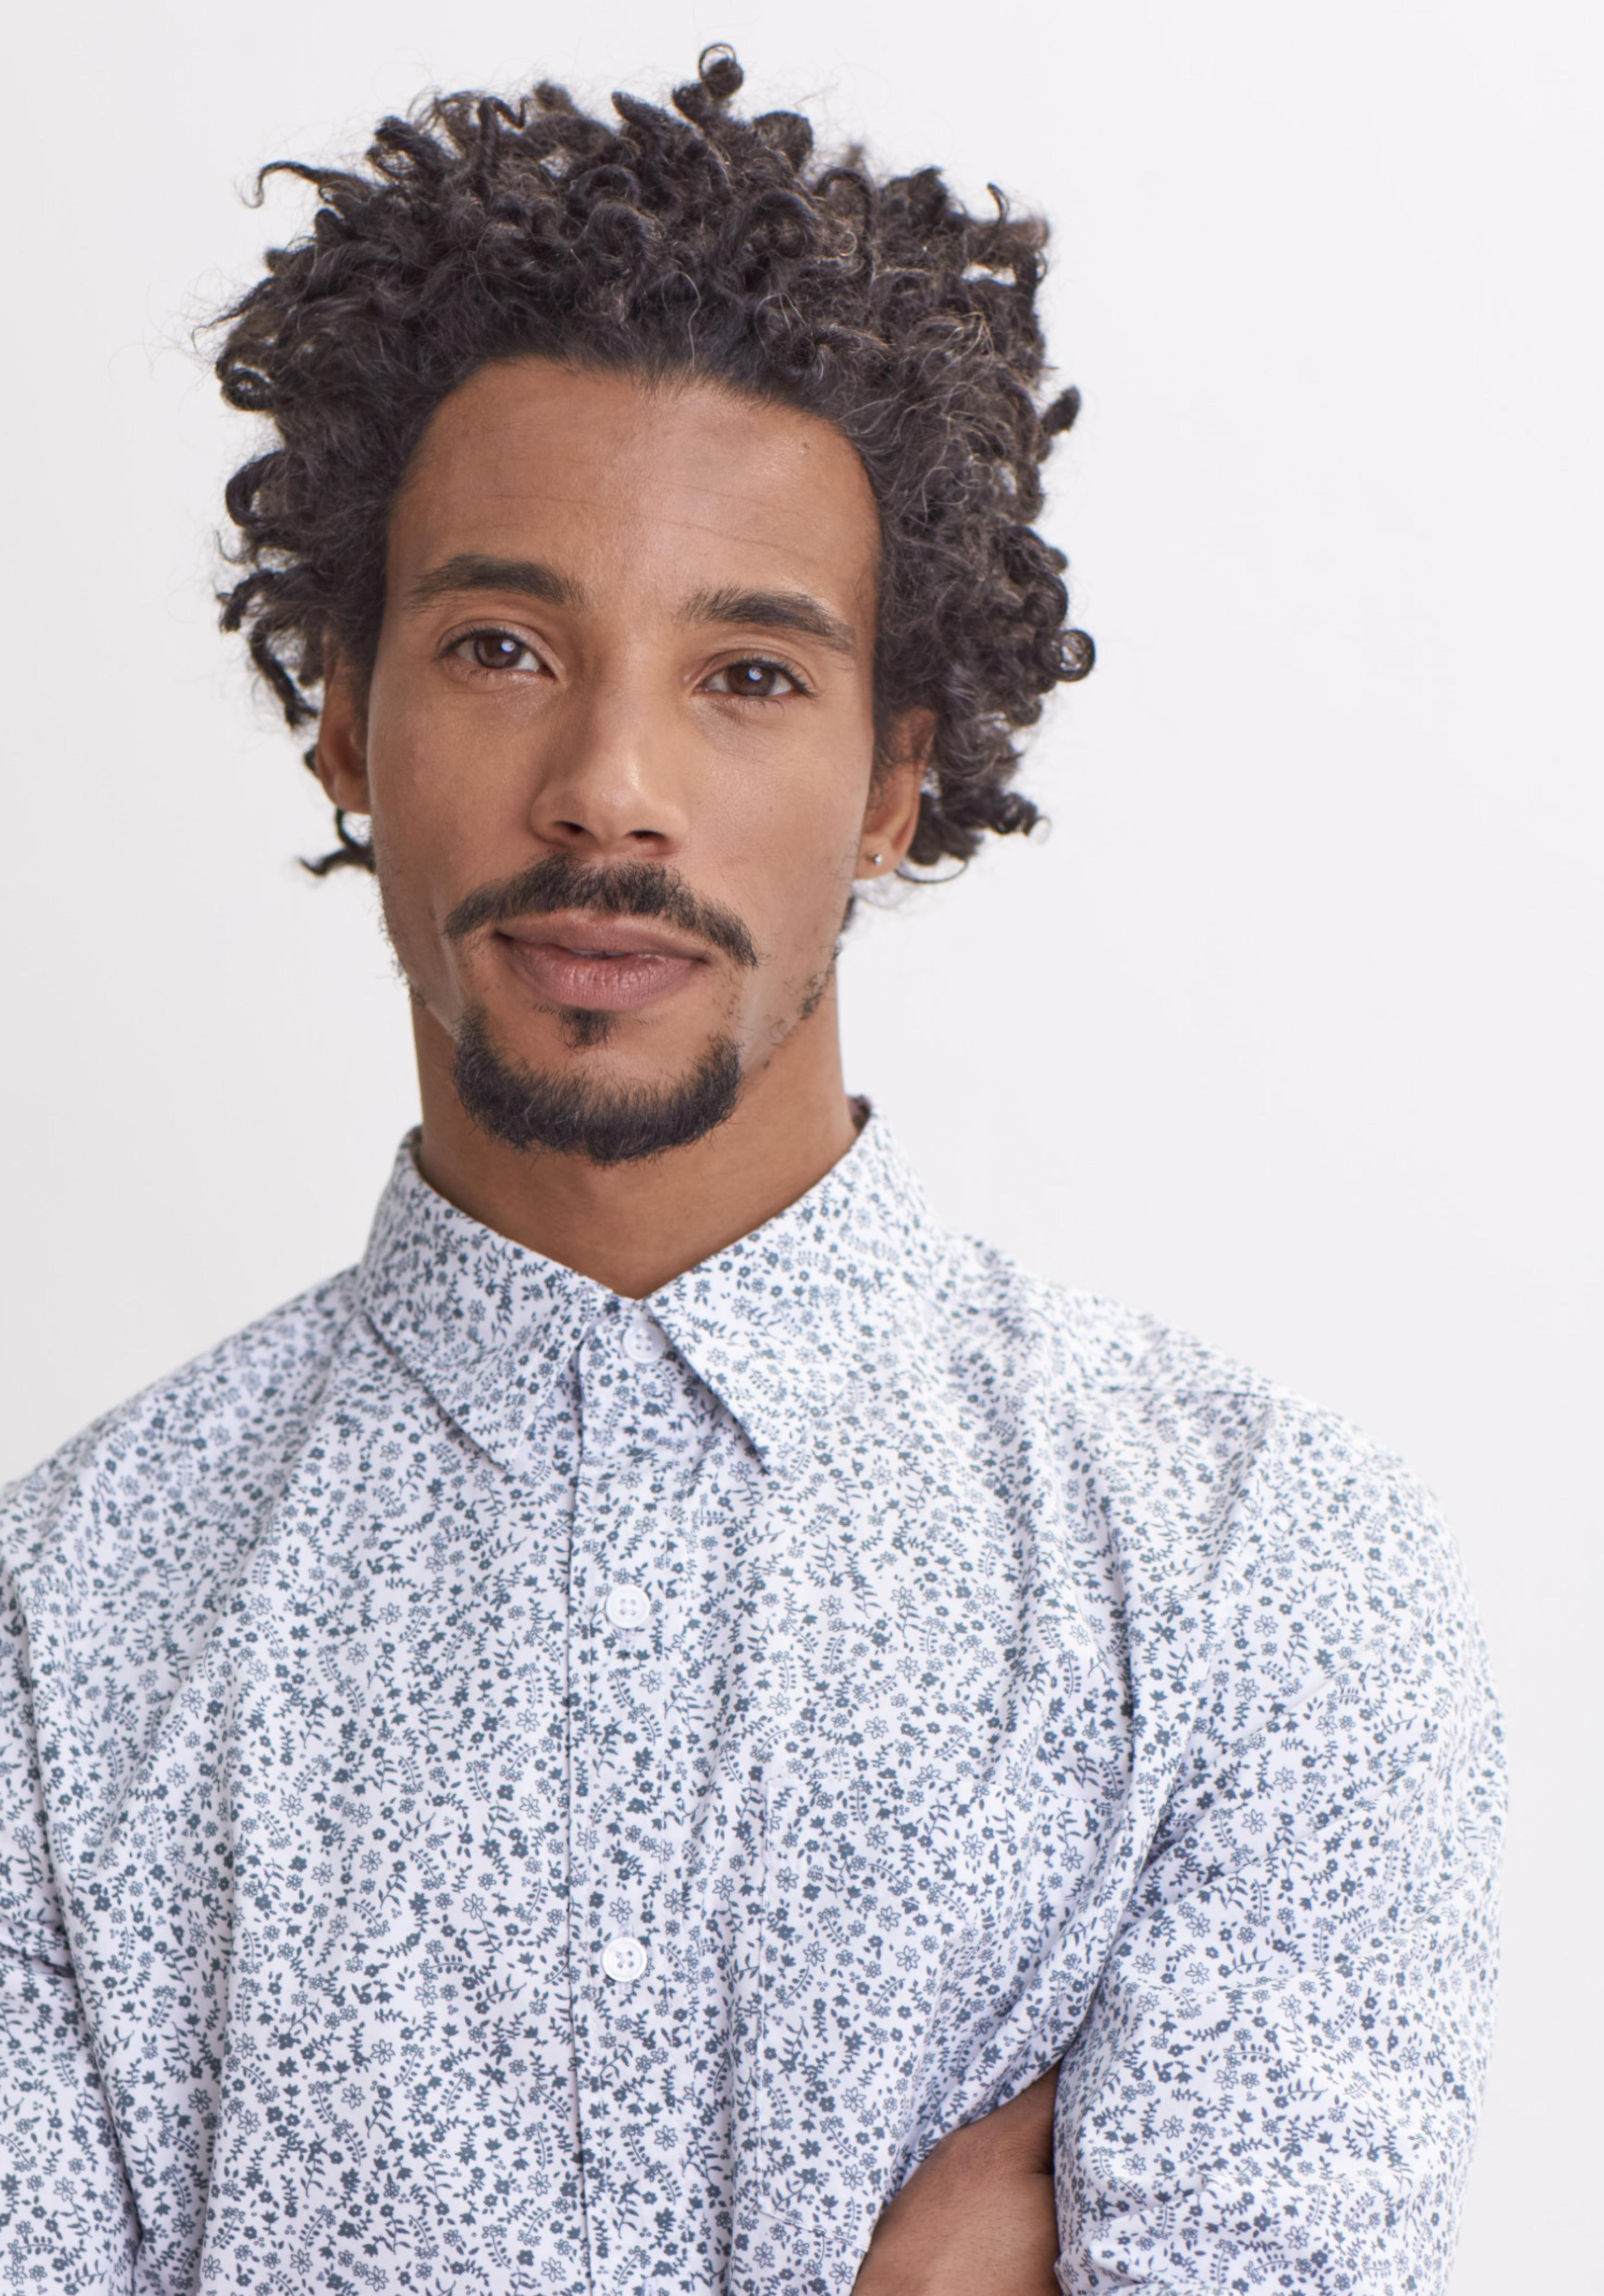 Male model wearing a white and blue floral shirt.